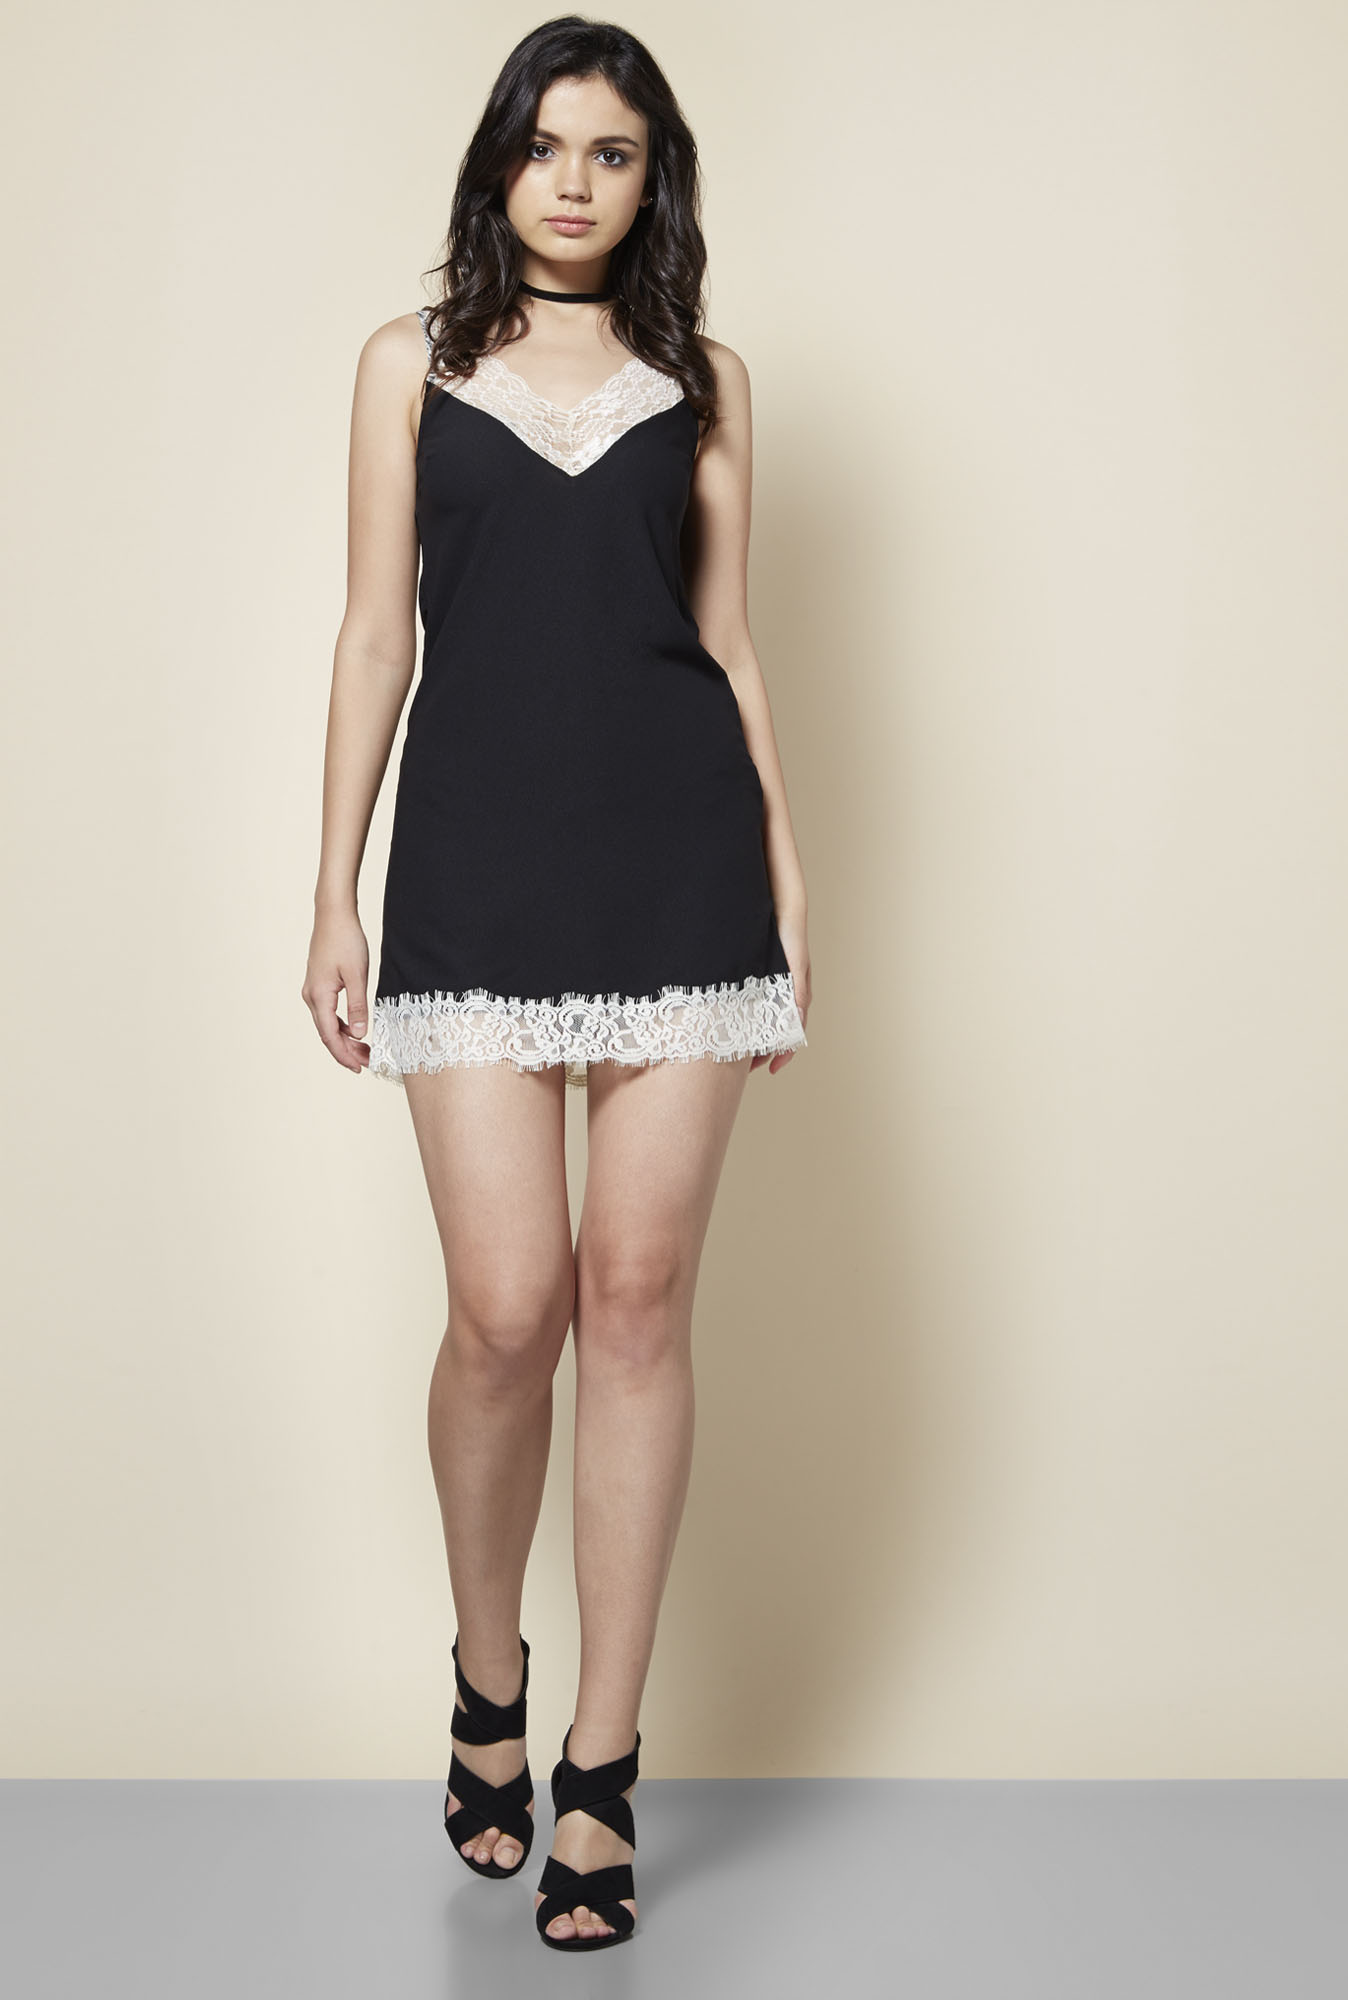 New Look Black Lace Dress